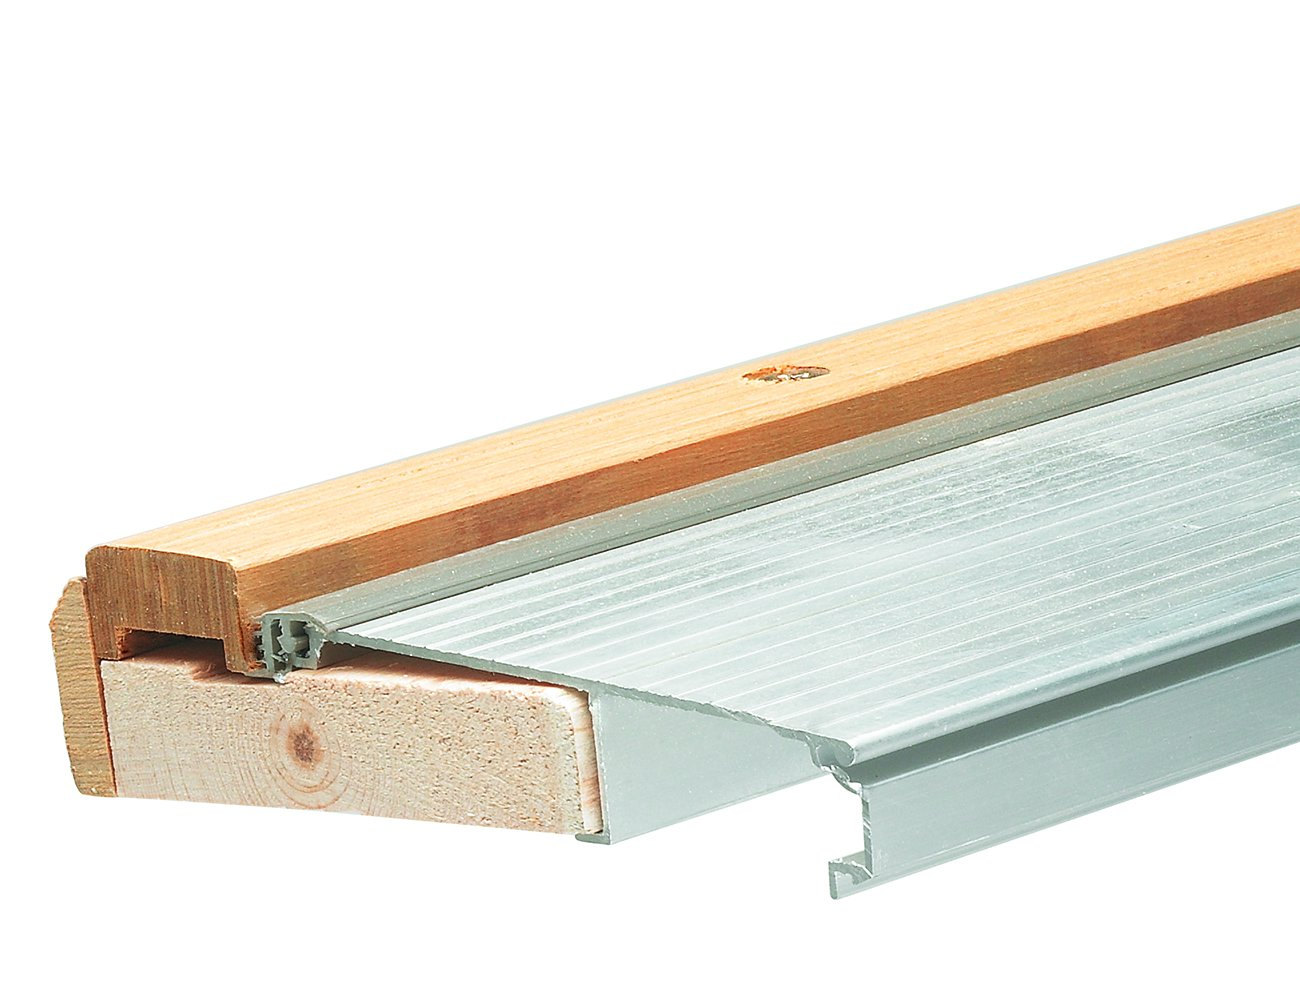 """Frost King TAOC36A Adjustable Sill Threshold, 36 in L X 5-5/8 in W X 1-5/16 in H, Aluminum, 3' L x 5-5/8"""" W x 1-3/8"""" H, Mill Finish"""